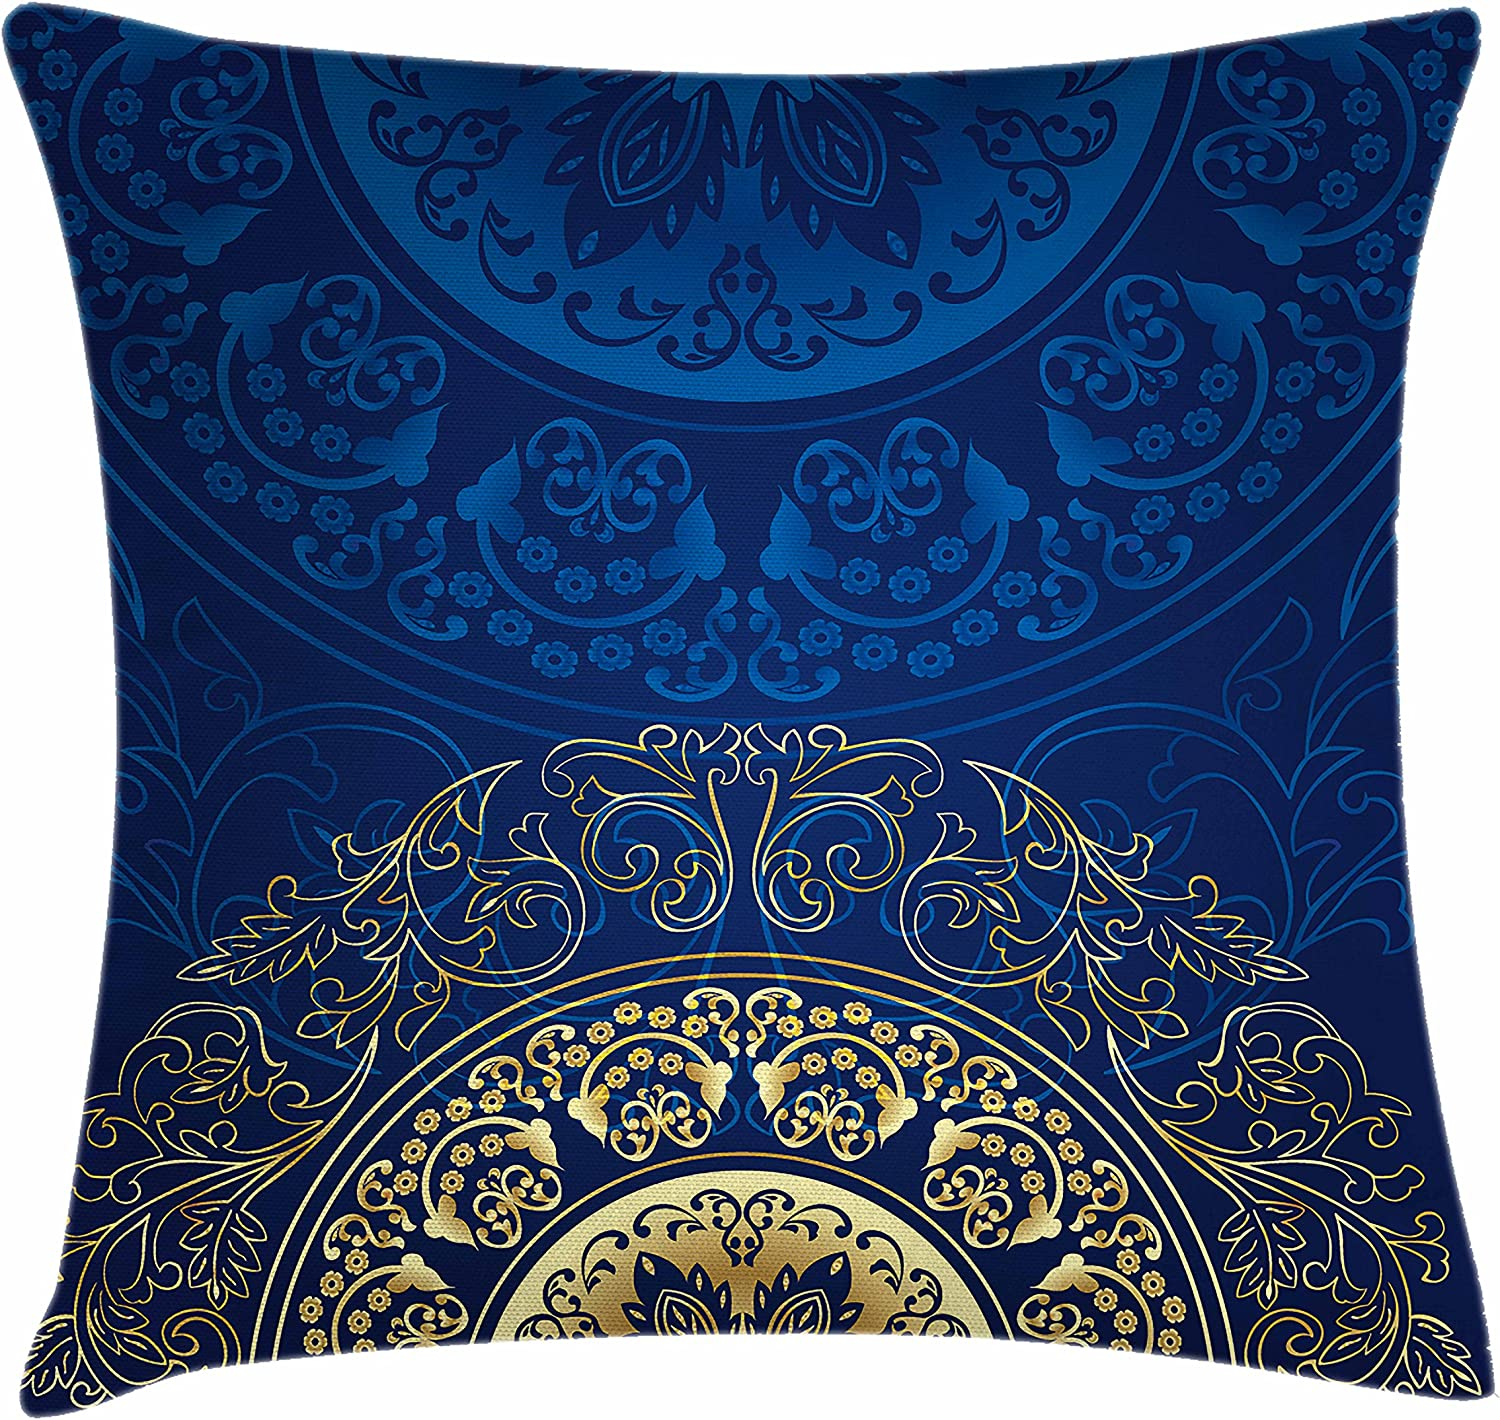 Amazon Com Lunarable Royal Blue Throw Pillow Cushion Cover Vintage Eastern Circular Floral Old Fashioned Design Decorative Square Accent Pillow Case 16 X 16 Blue Yellow Home Kitchen